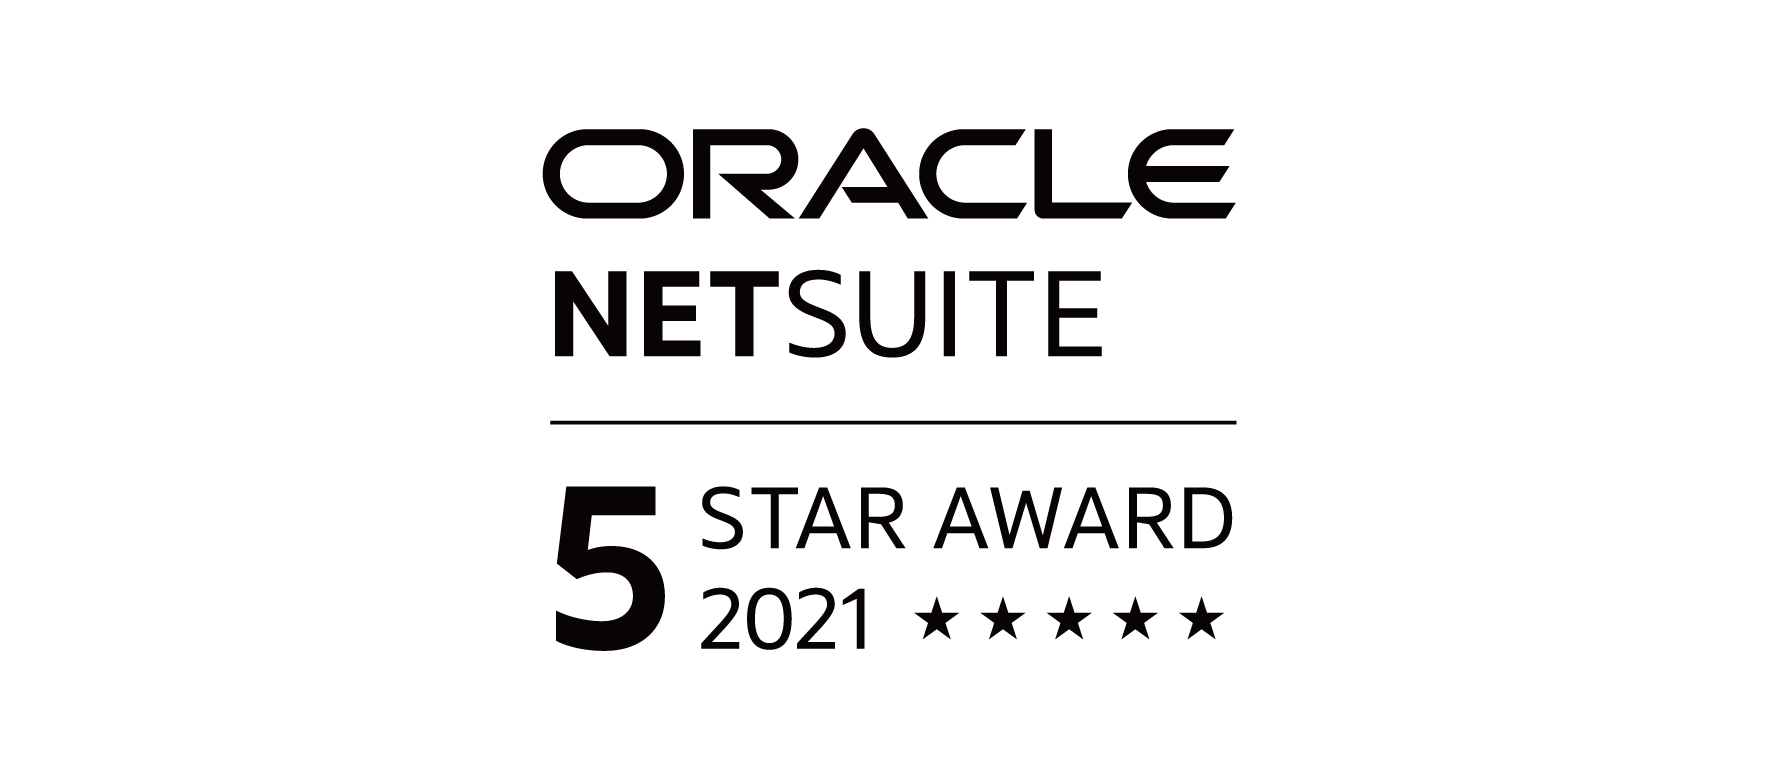 introv Limited Oracle NetSuite Alliance Partner